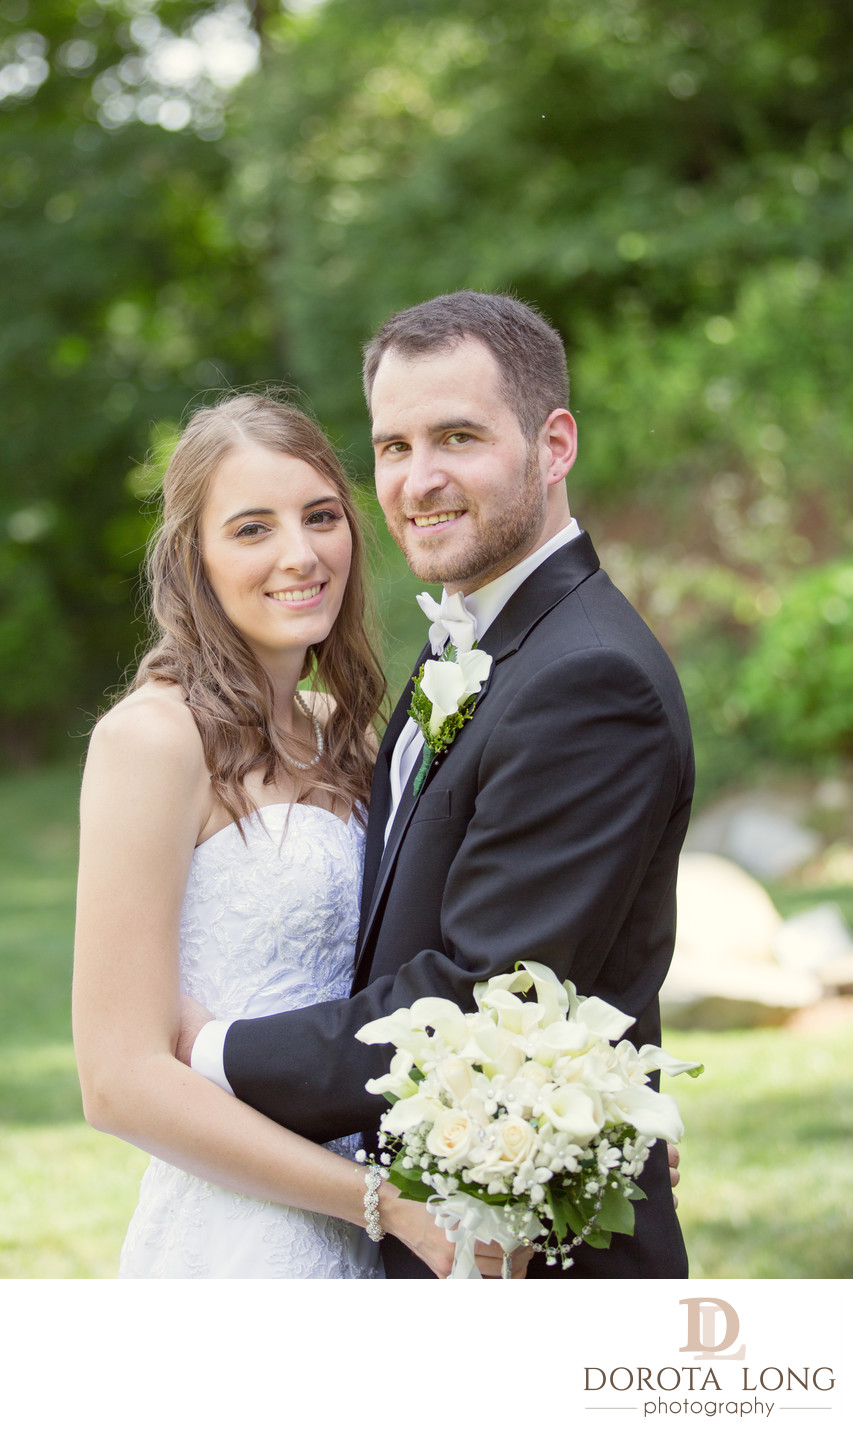 Wedding photography in Danbury, CT and Westchester, NY